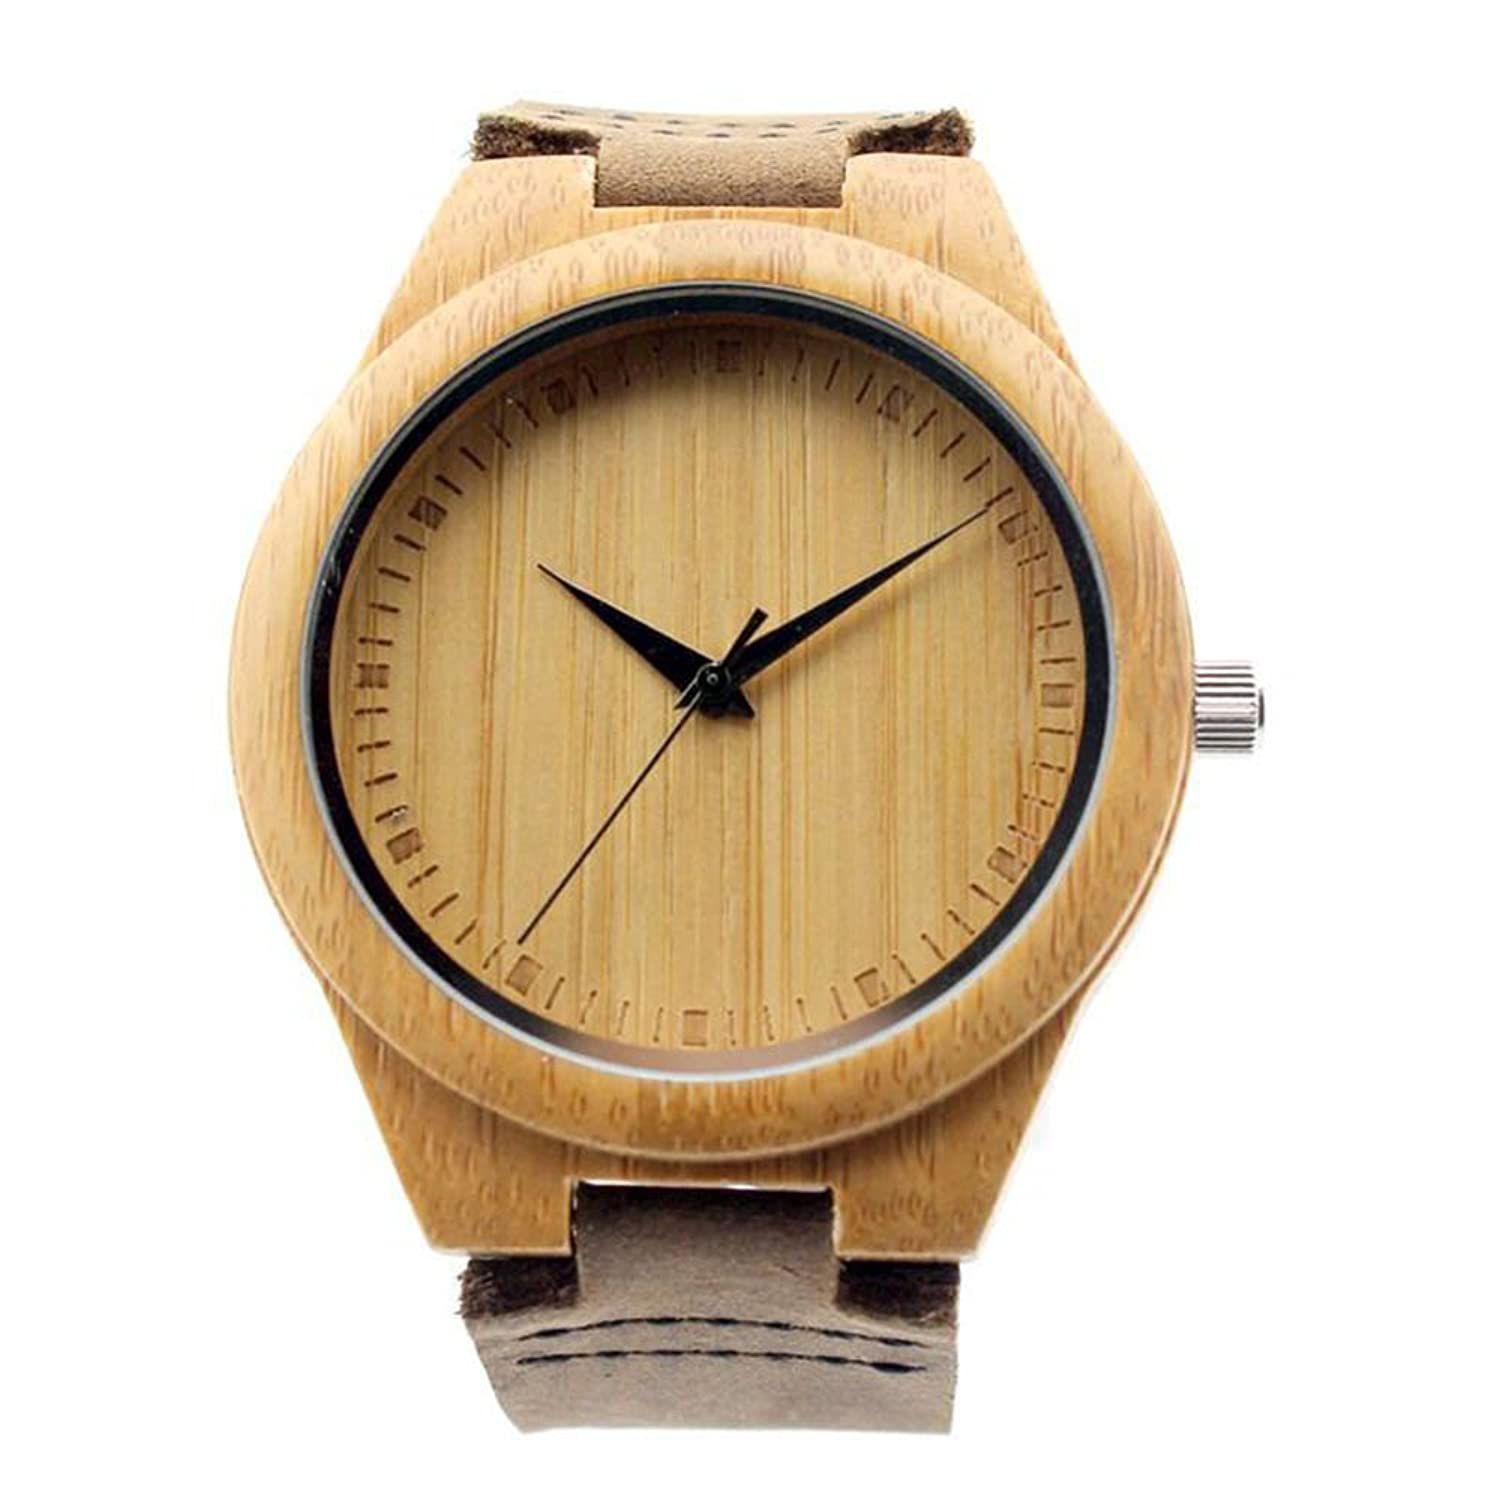 hunting brooklyn true large carpenter watches design designed cool wood thumb